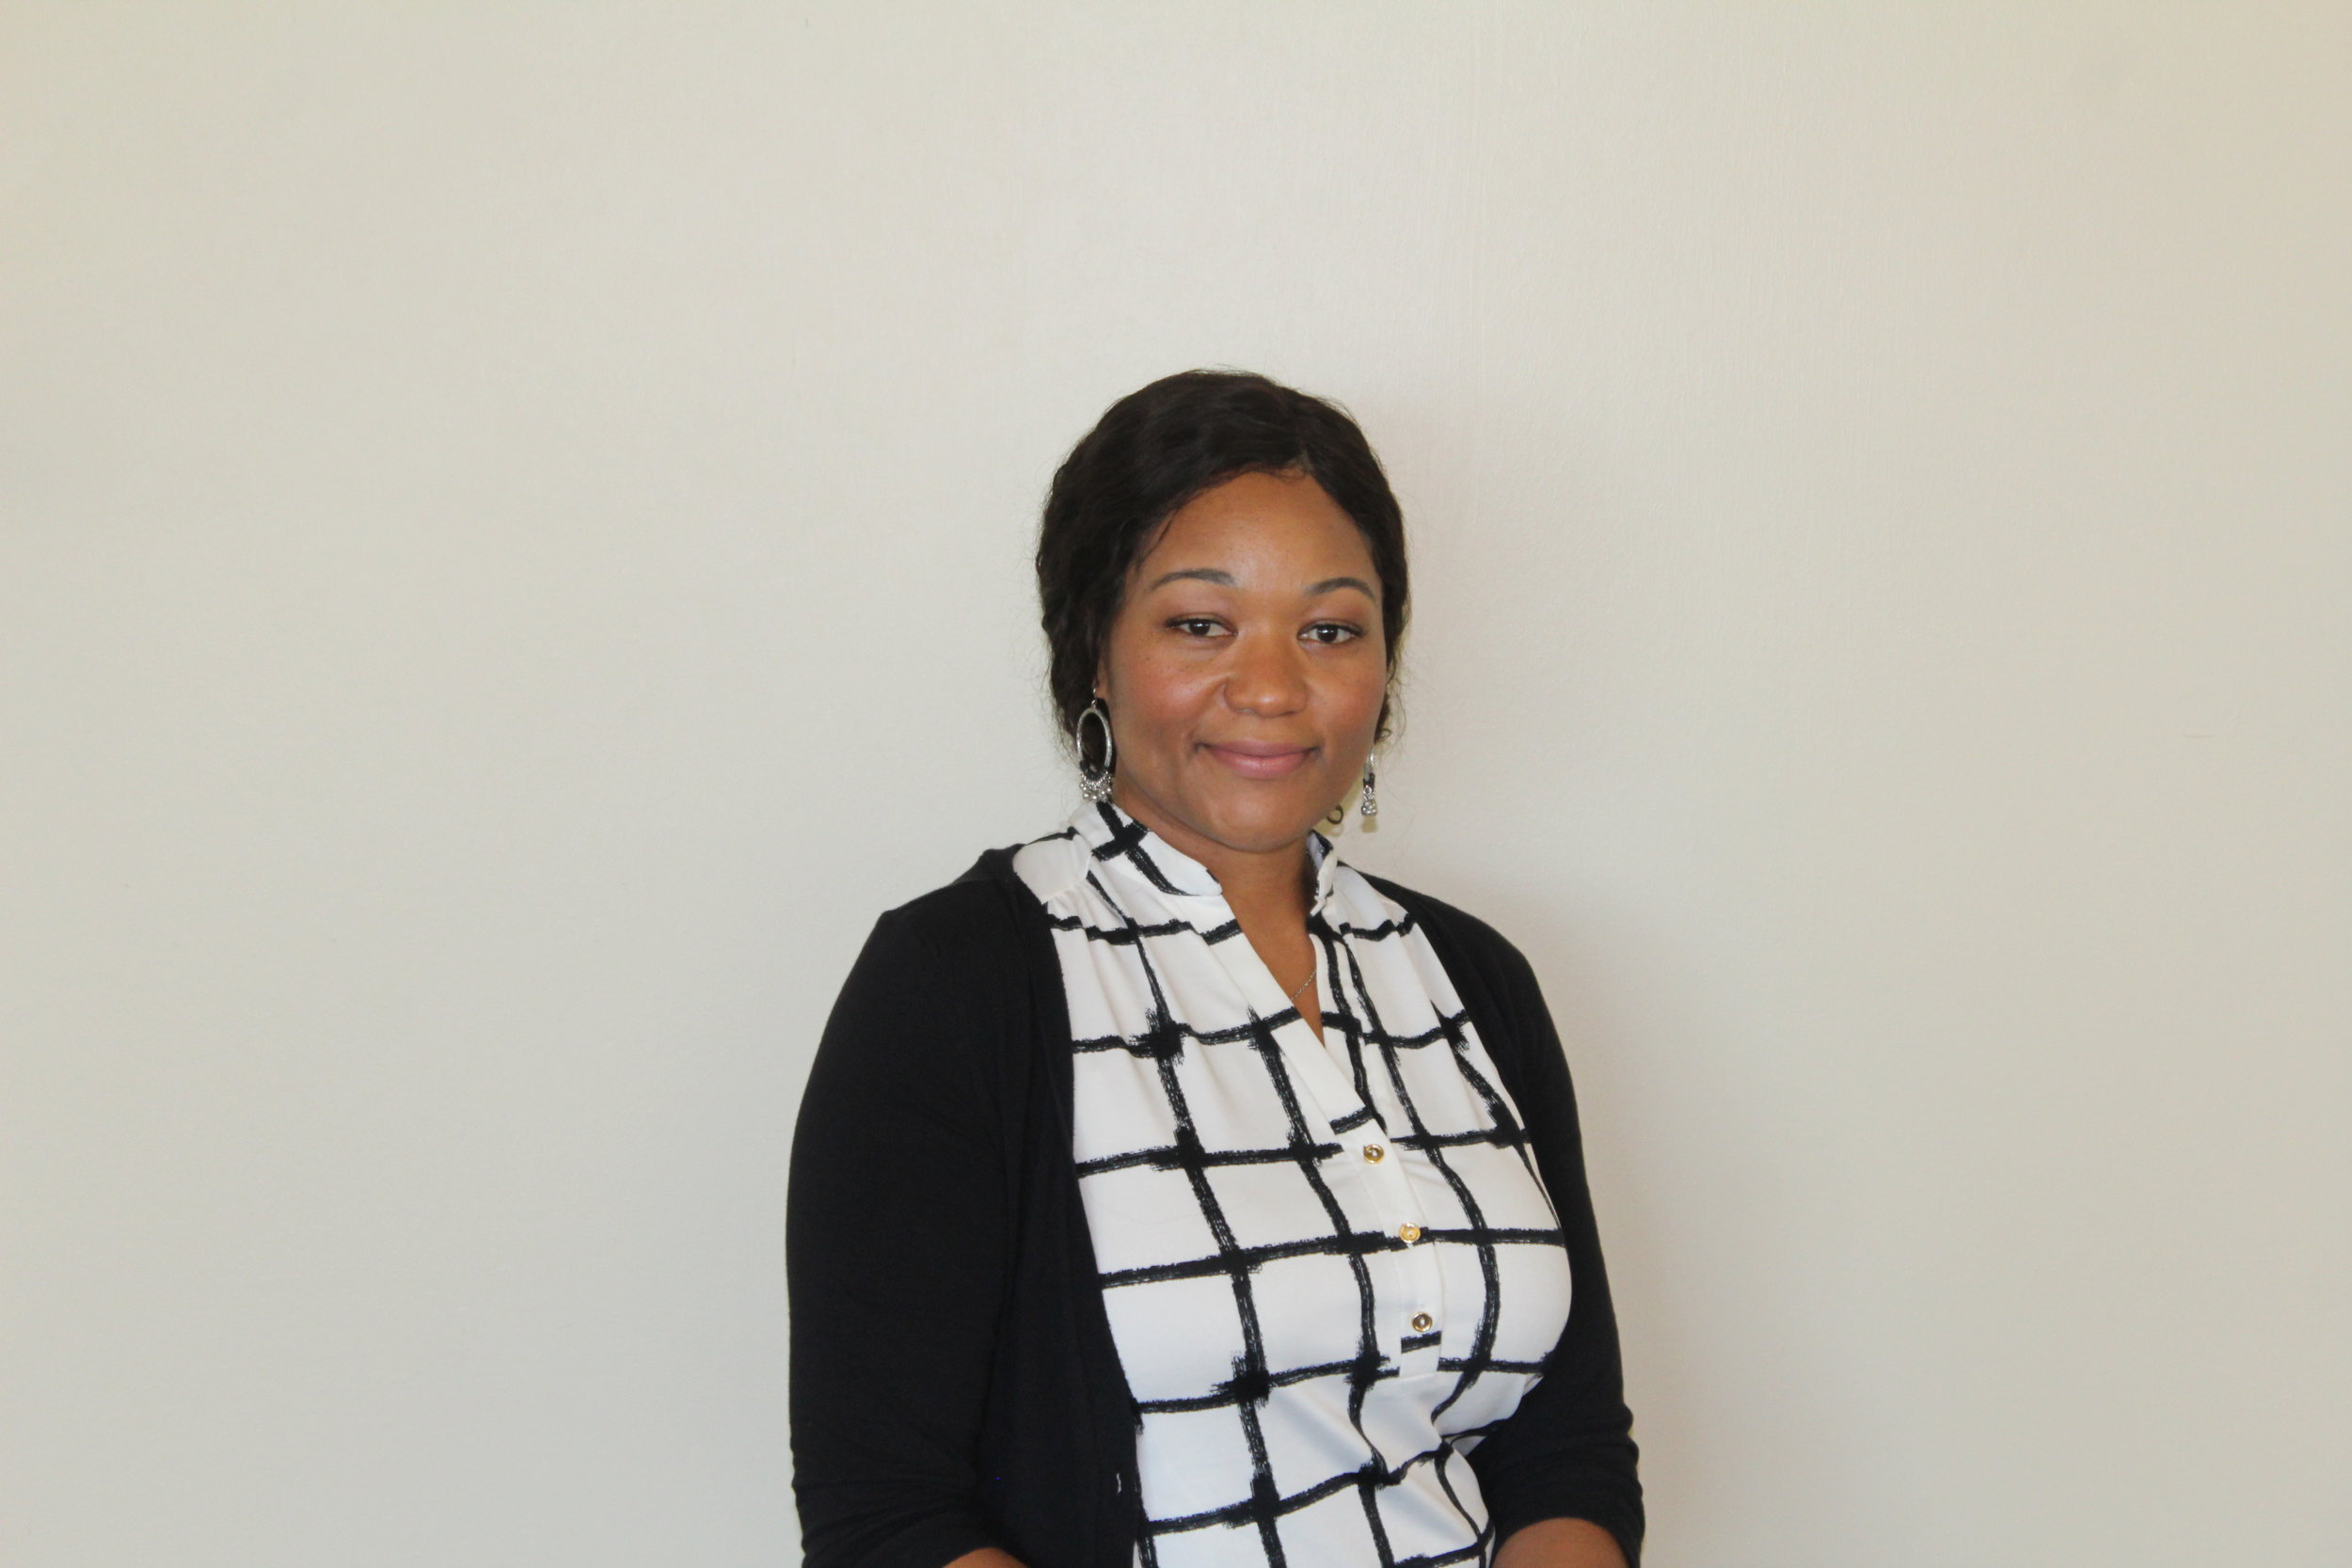 Nakia Troutman, CEO, Institute of Diversity & Inclusion